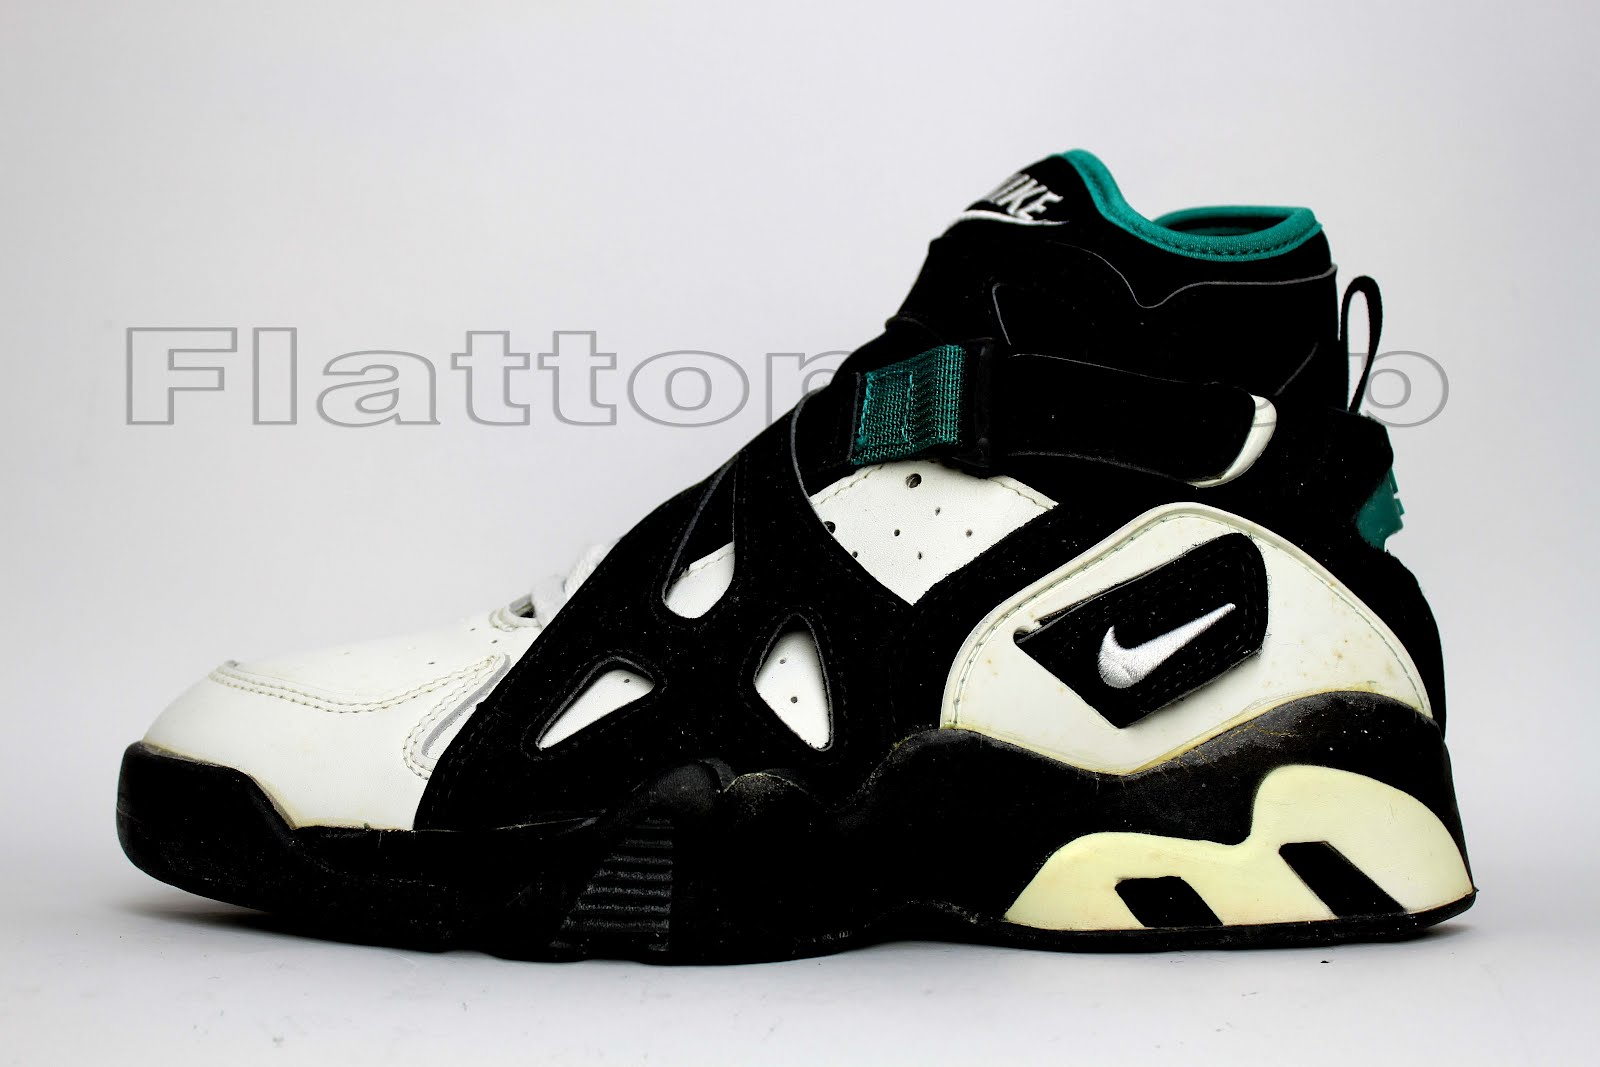 fcbd2a2e601941 Nike Air Flight 1994 Related Keywords   Suggestions - Nike Air ...